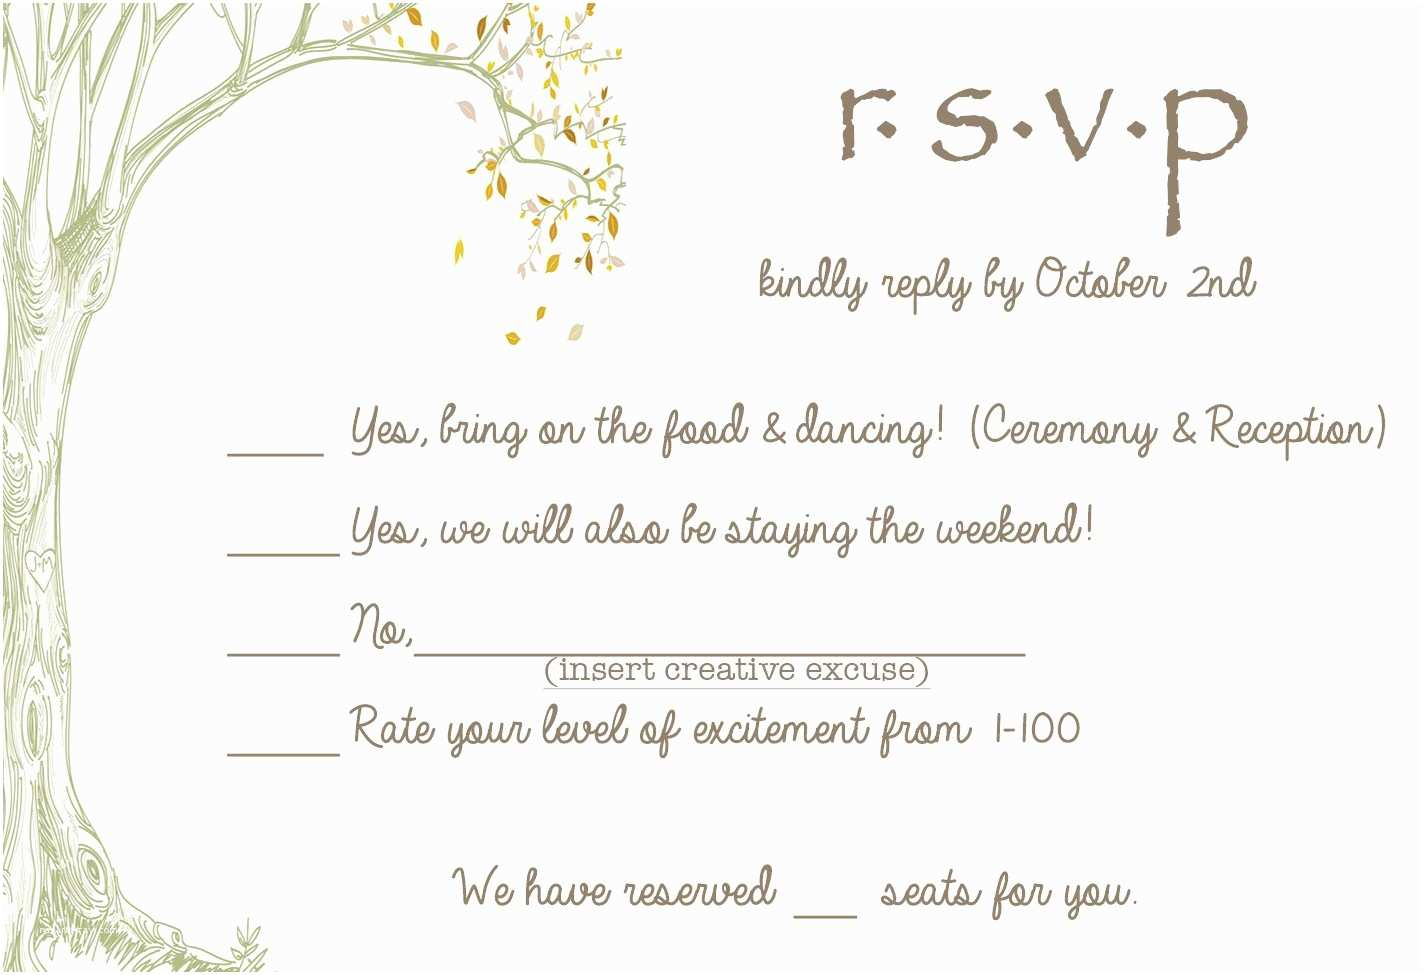 Wedding Invitations and Response Cards All In One Wedding Invitation Wedding Invitations Response Cards